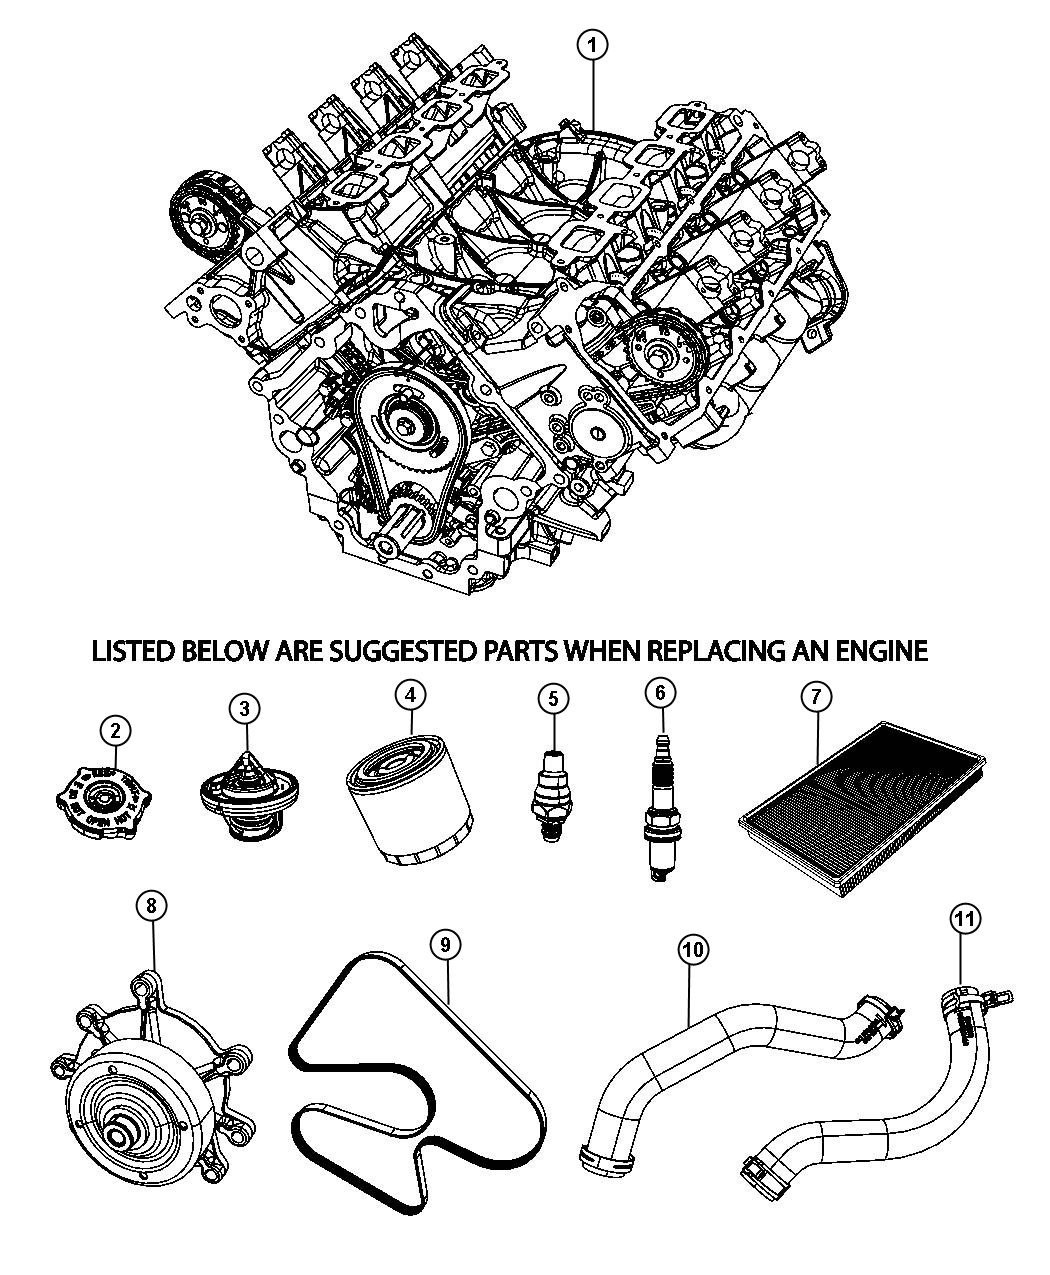 Chrysler Spark Plug Suggested